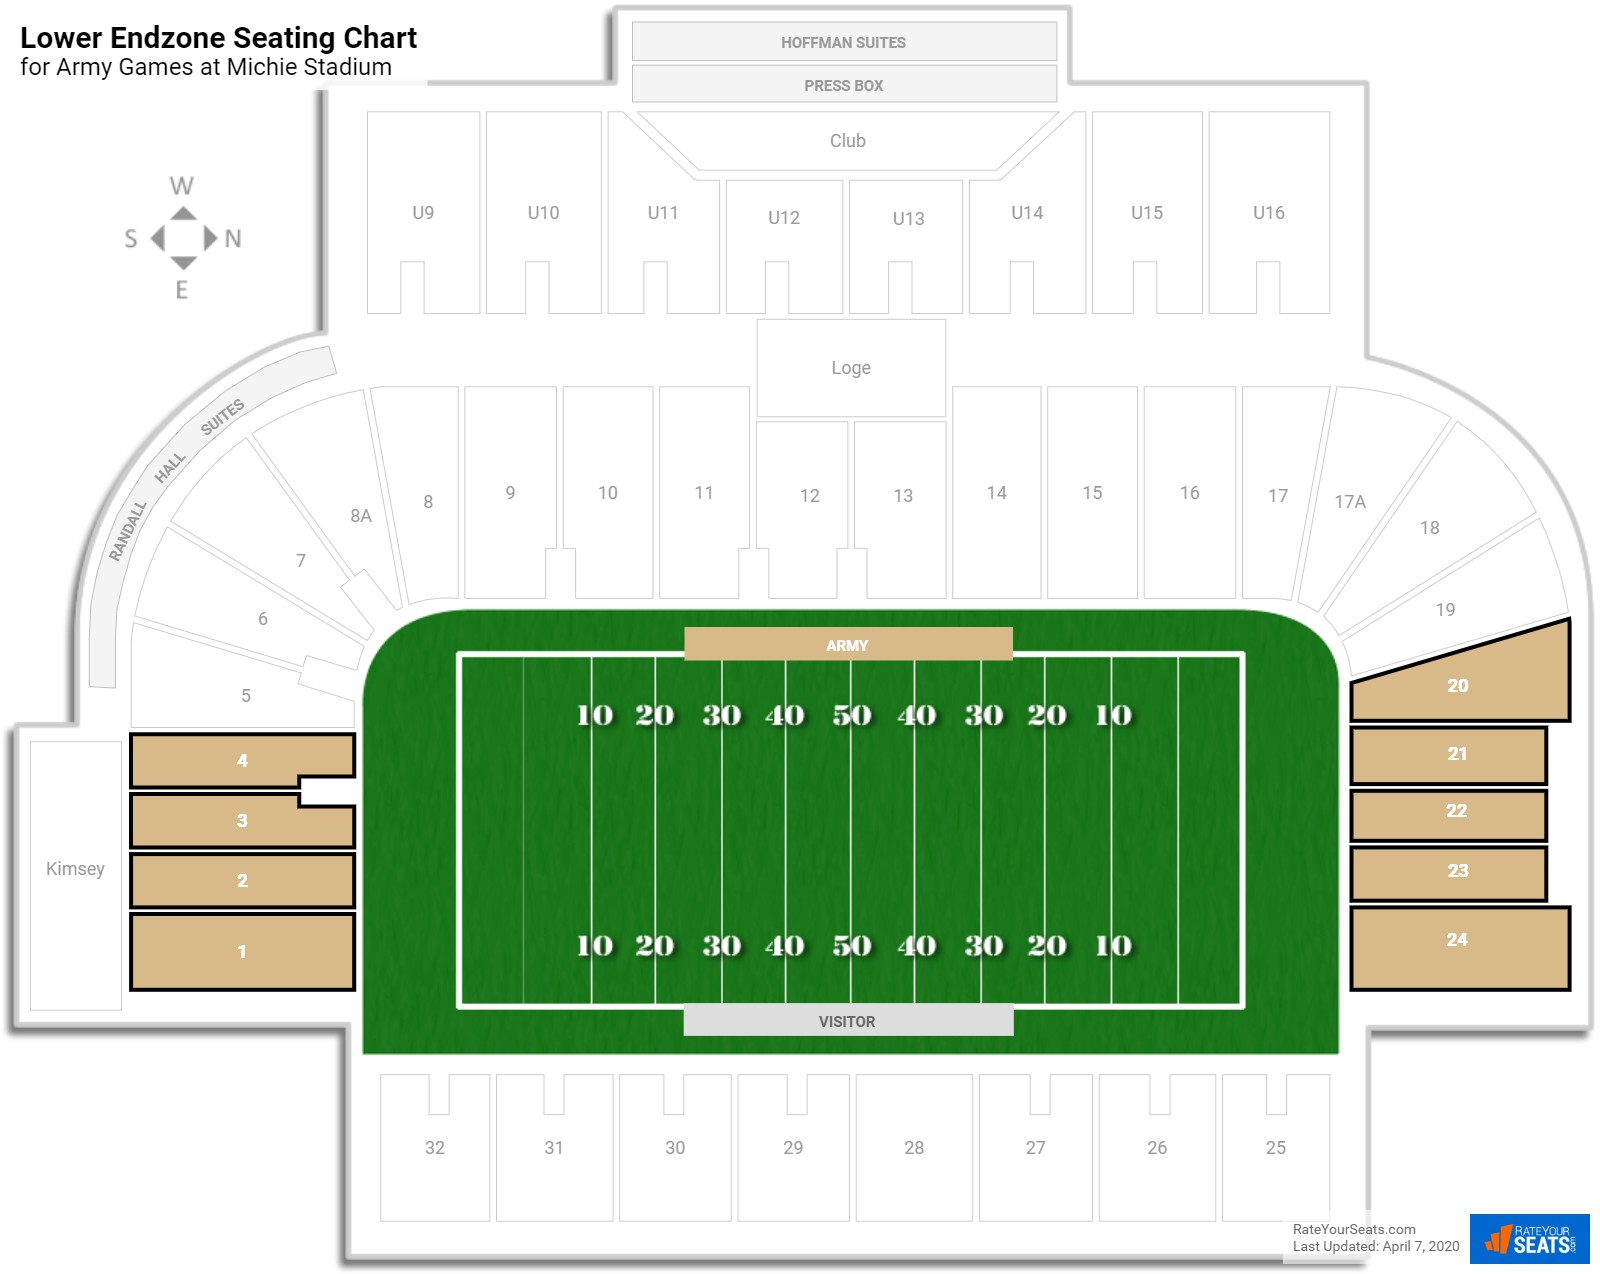 Michie Stadium Lower Endzone seating chart